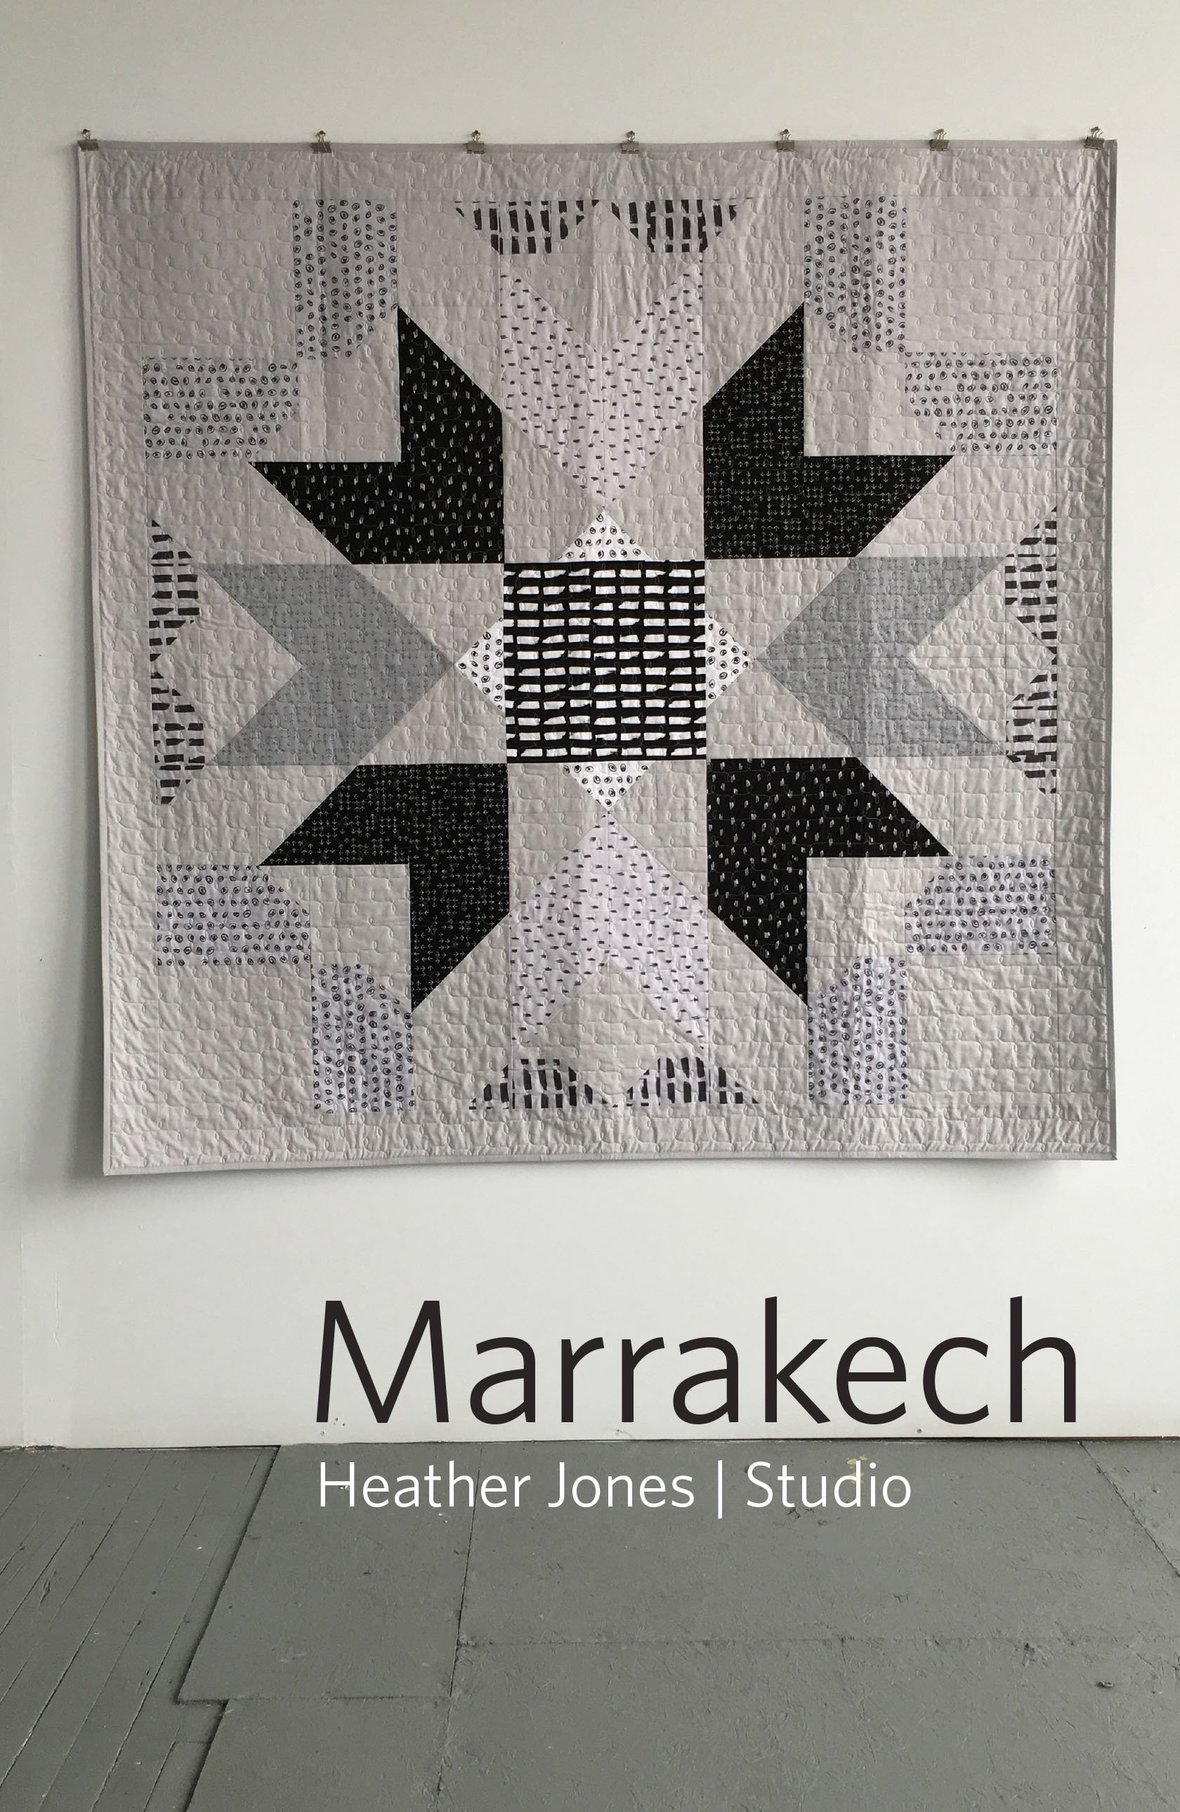 heather jones marrakech sewing pattern